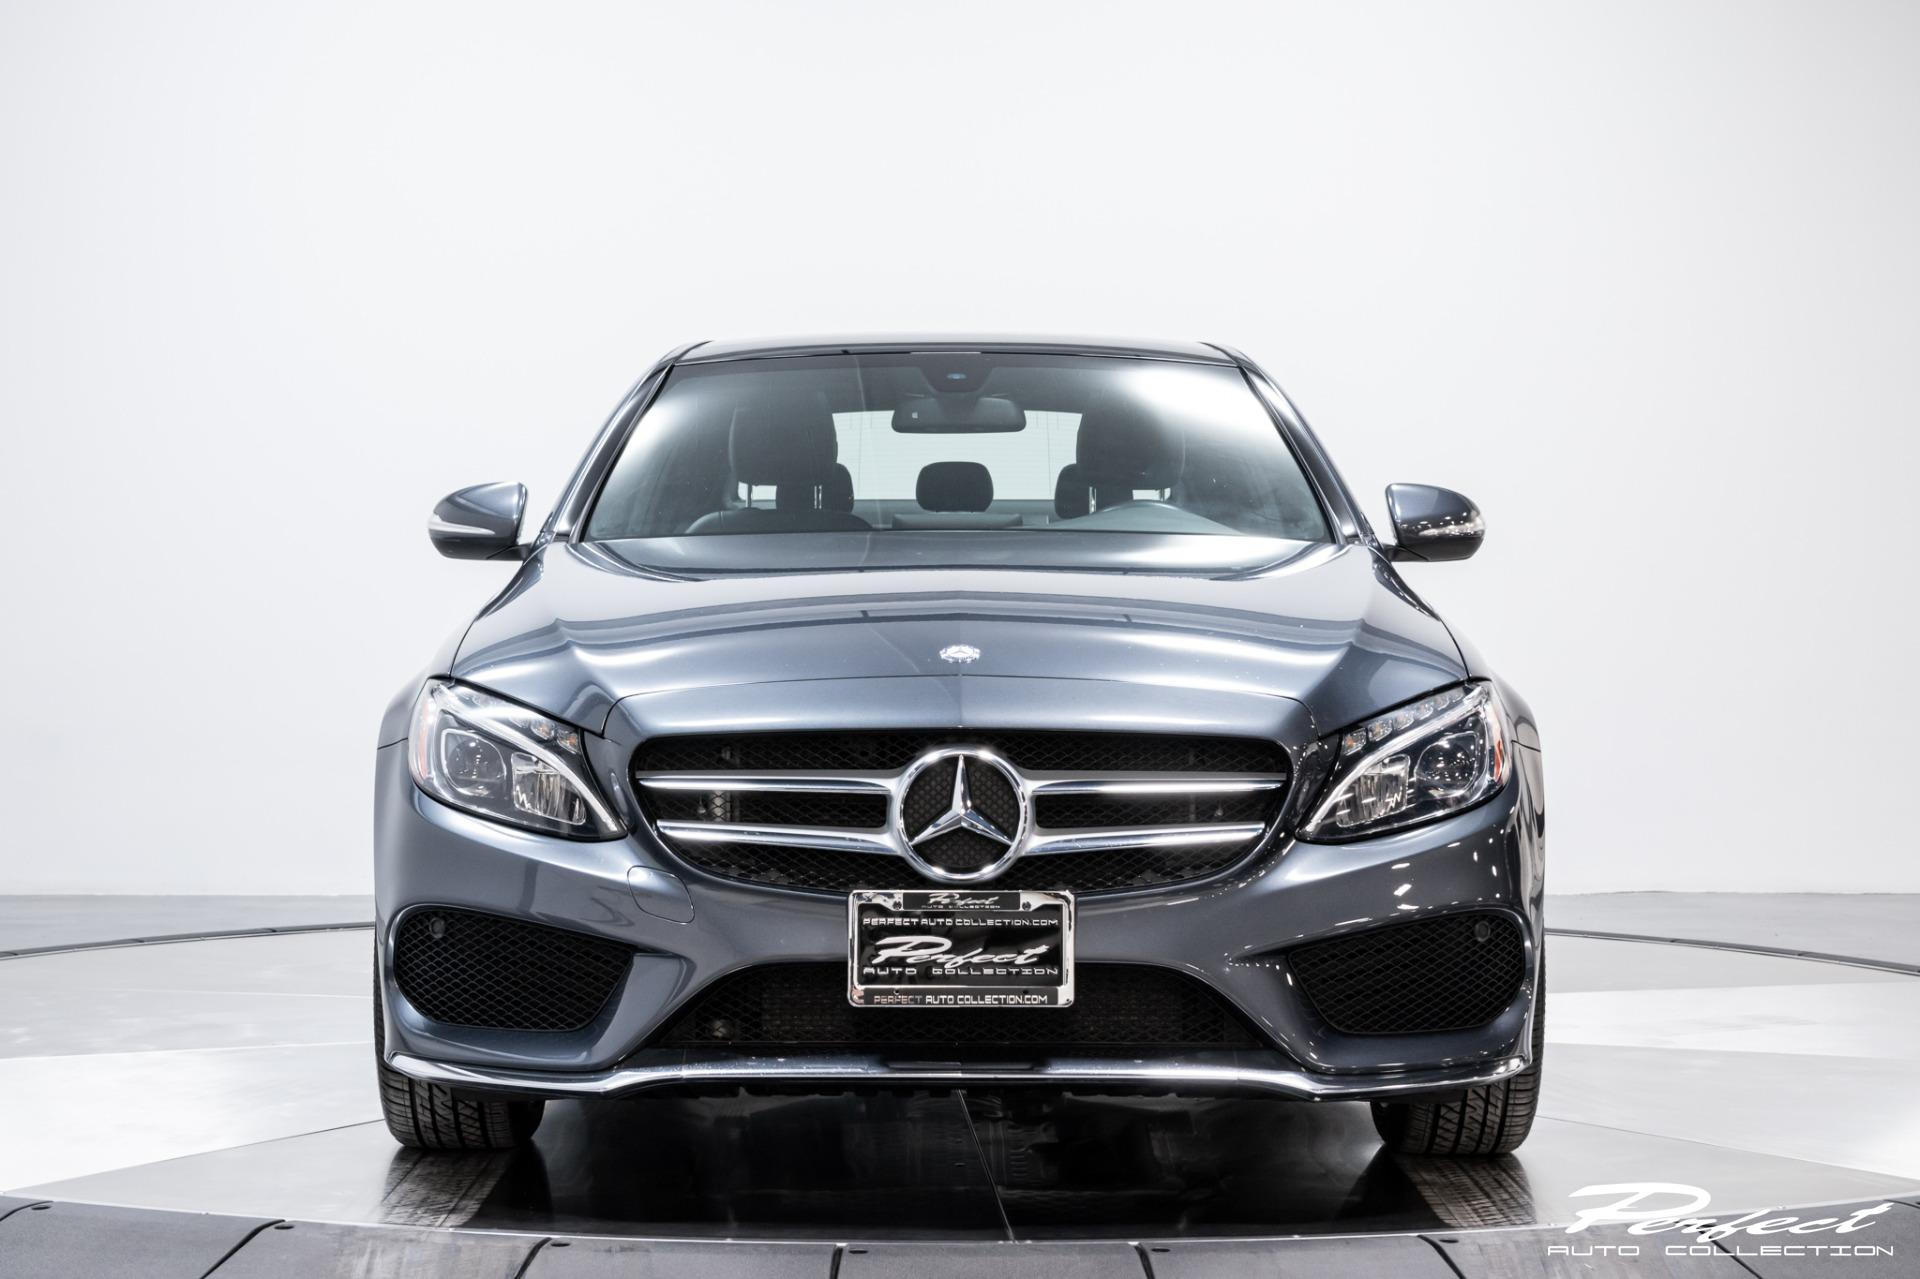 Used 2015 Mercedes-Benz C-Class C 400 4MATIC For Sale ...